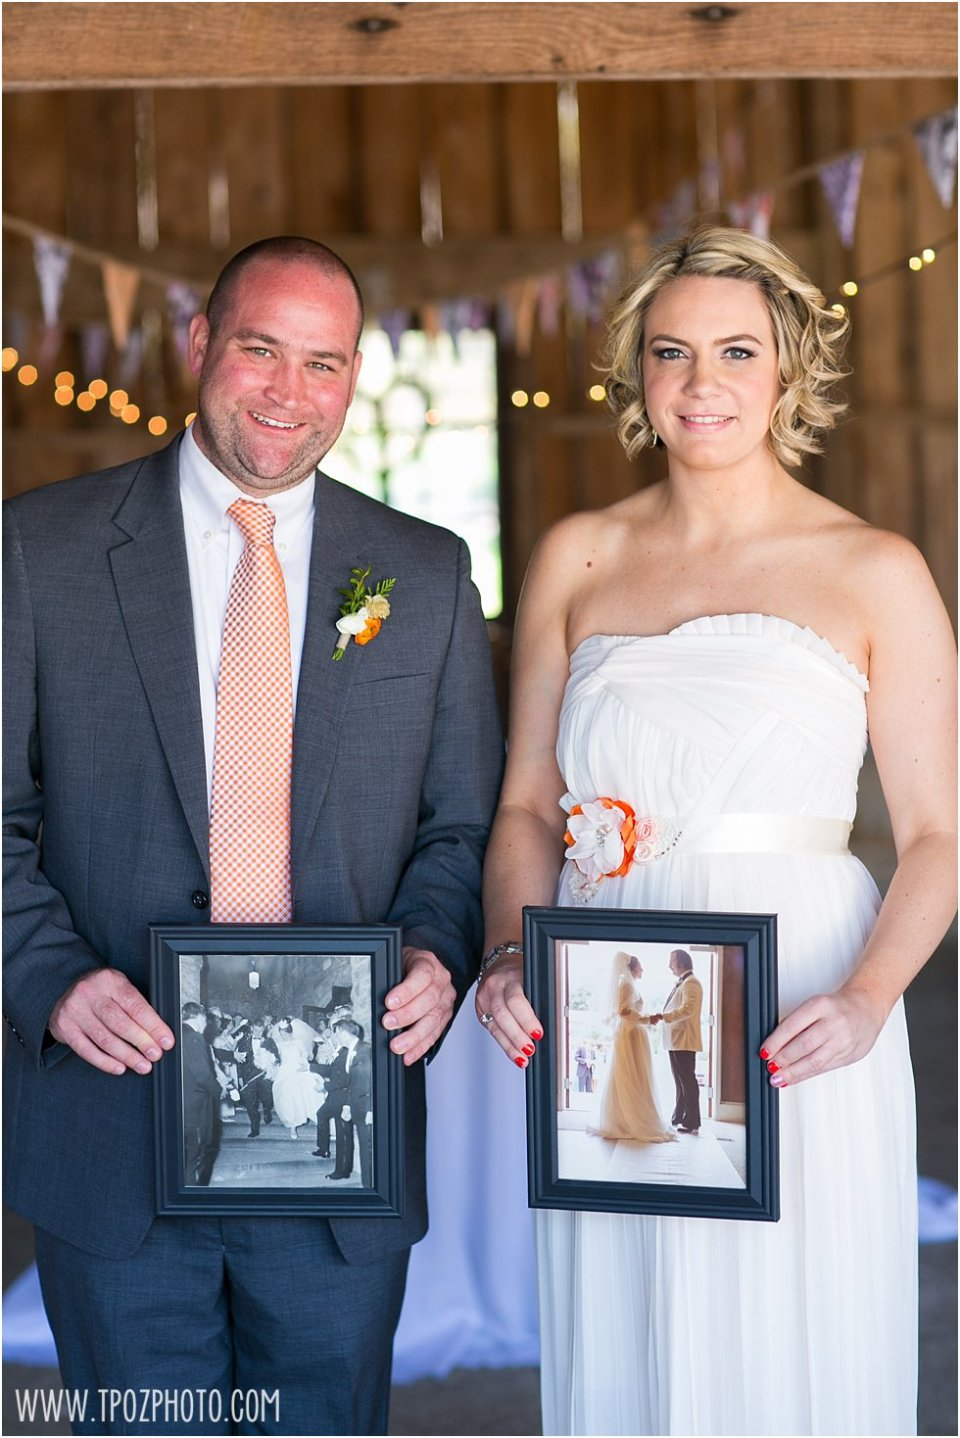 Beautiful Bride+Groom Photos